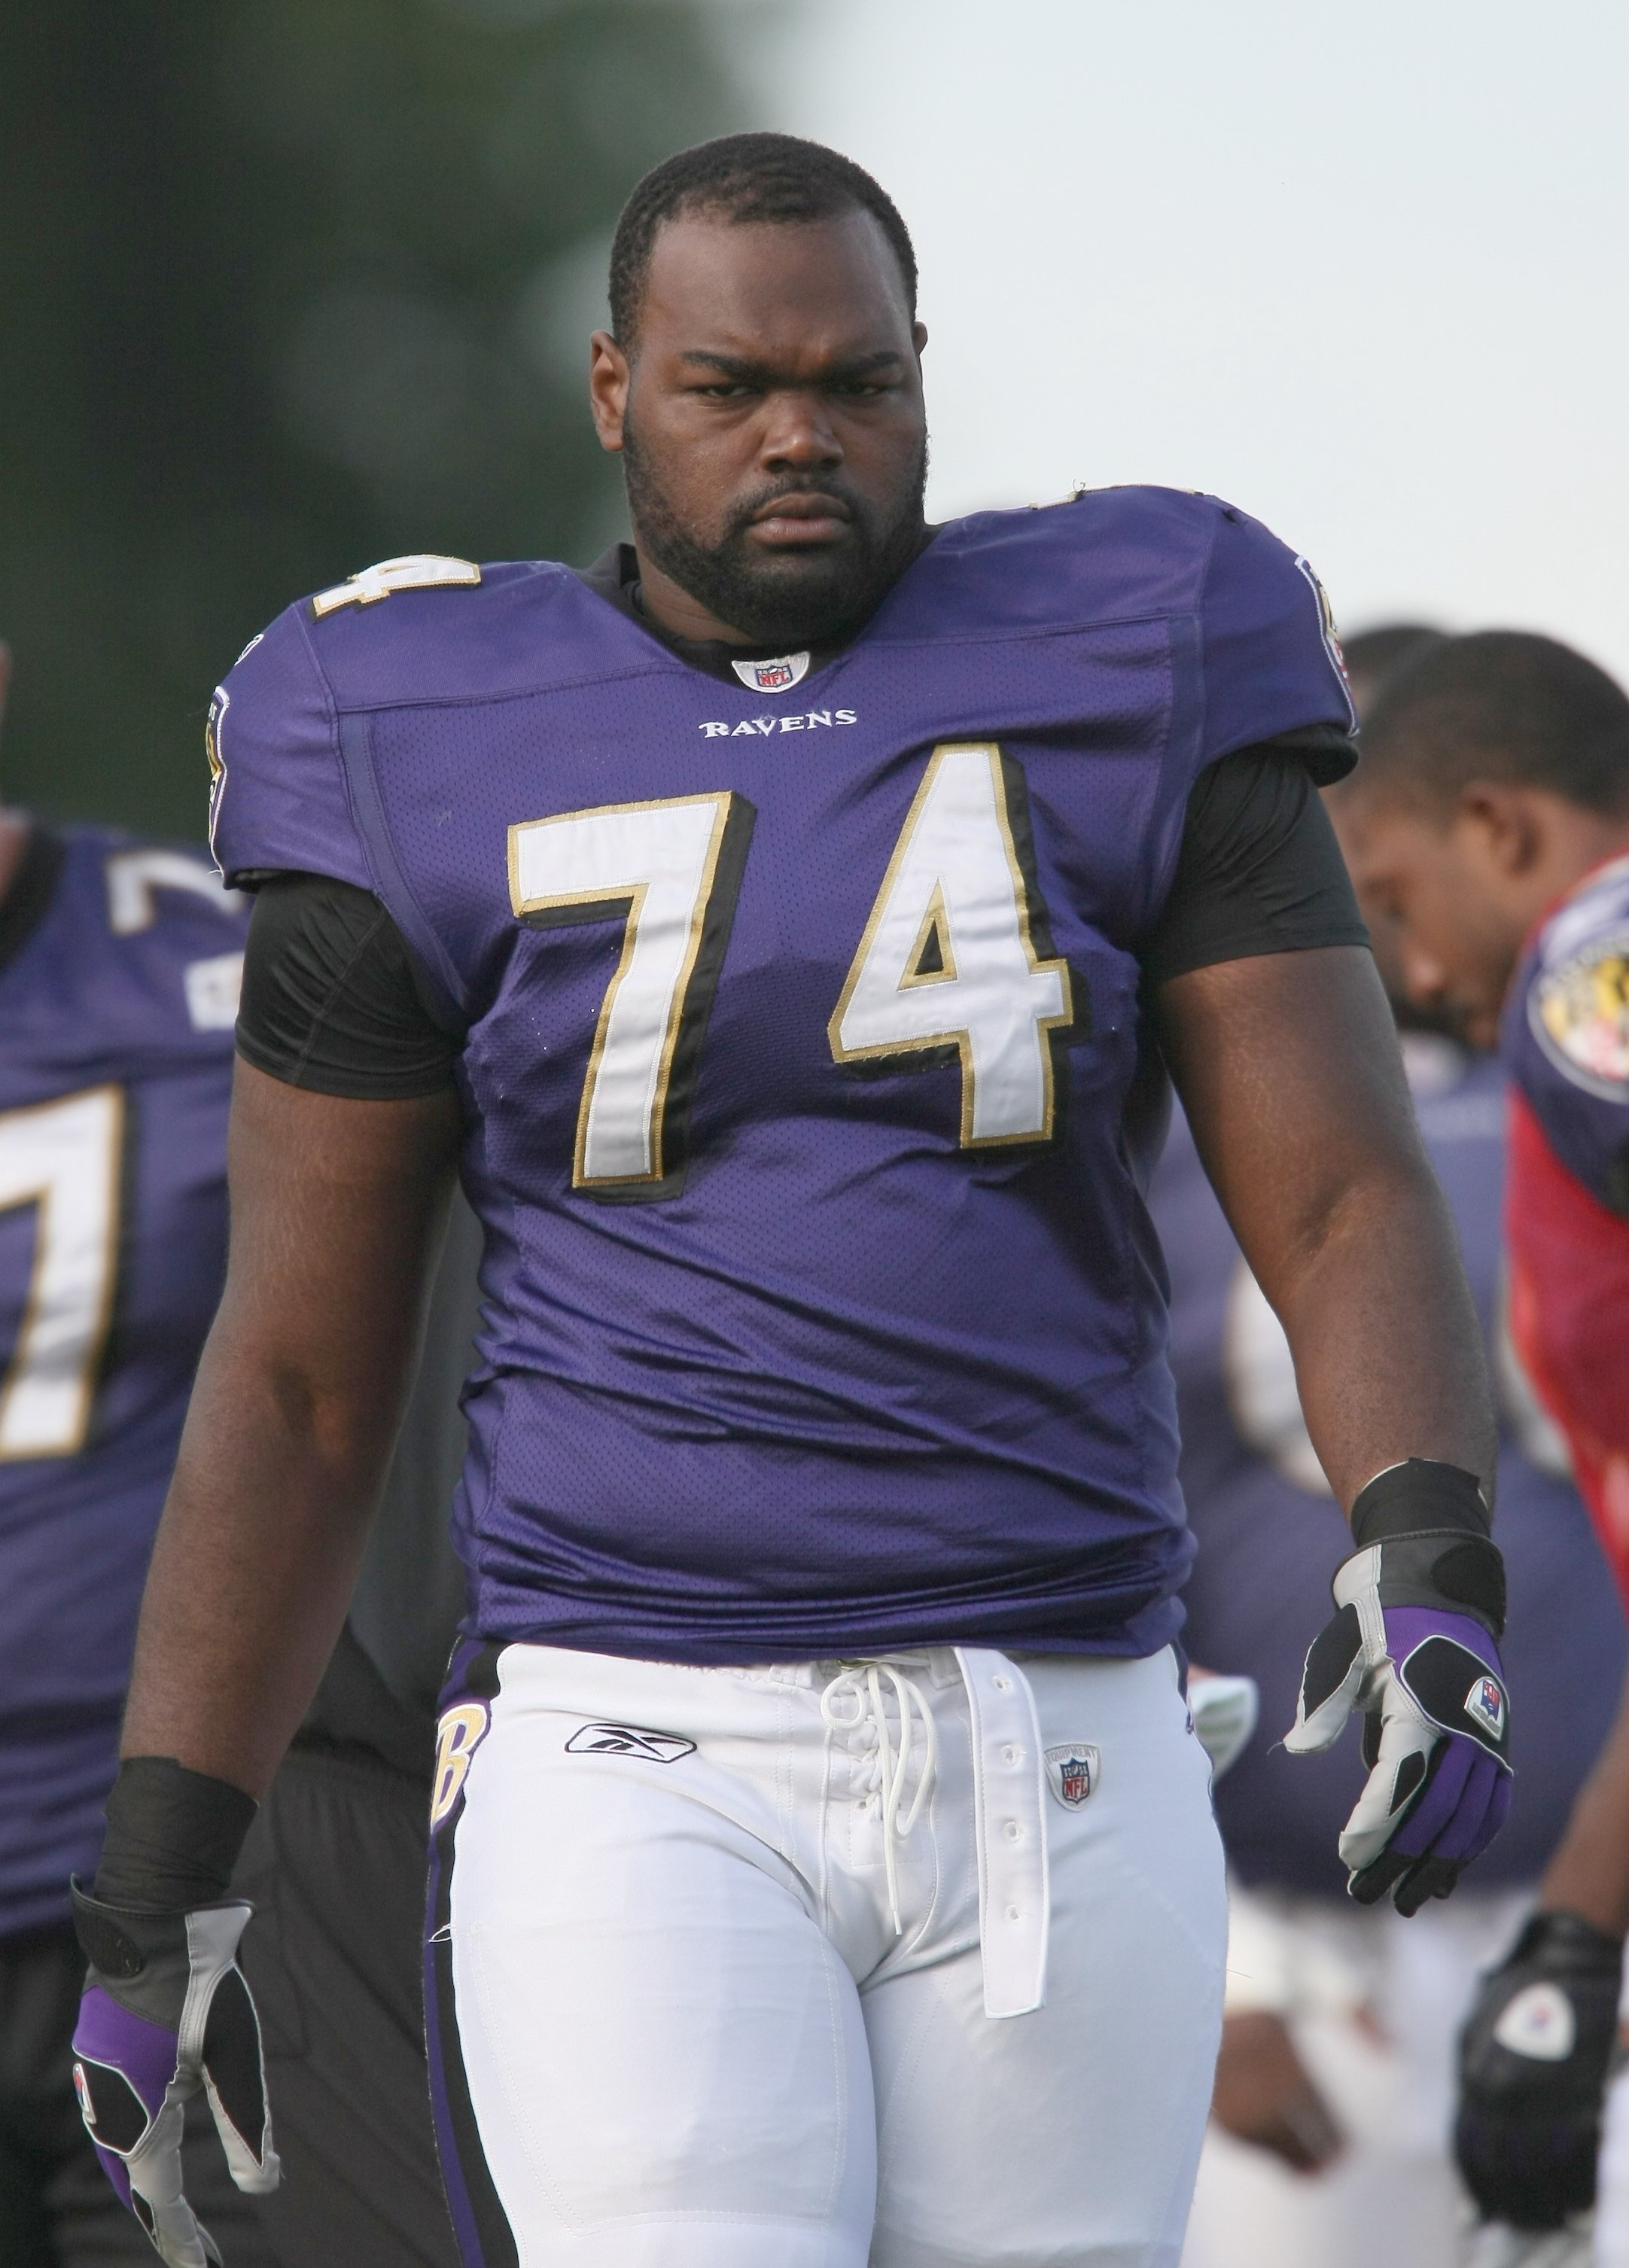 Oher and McKinnie Could be Out of Starting Role